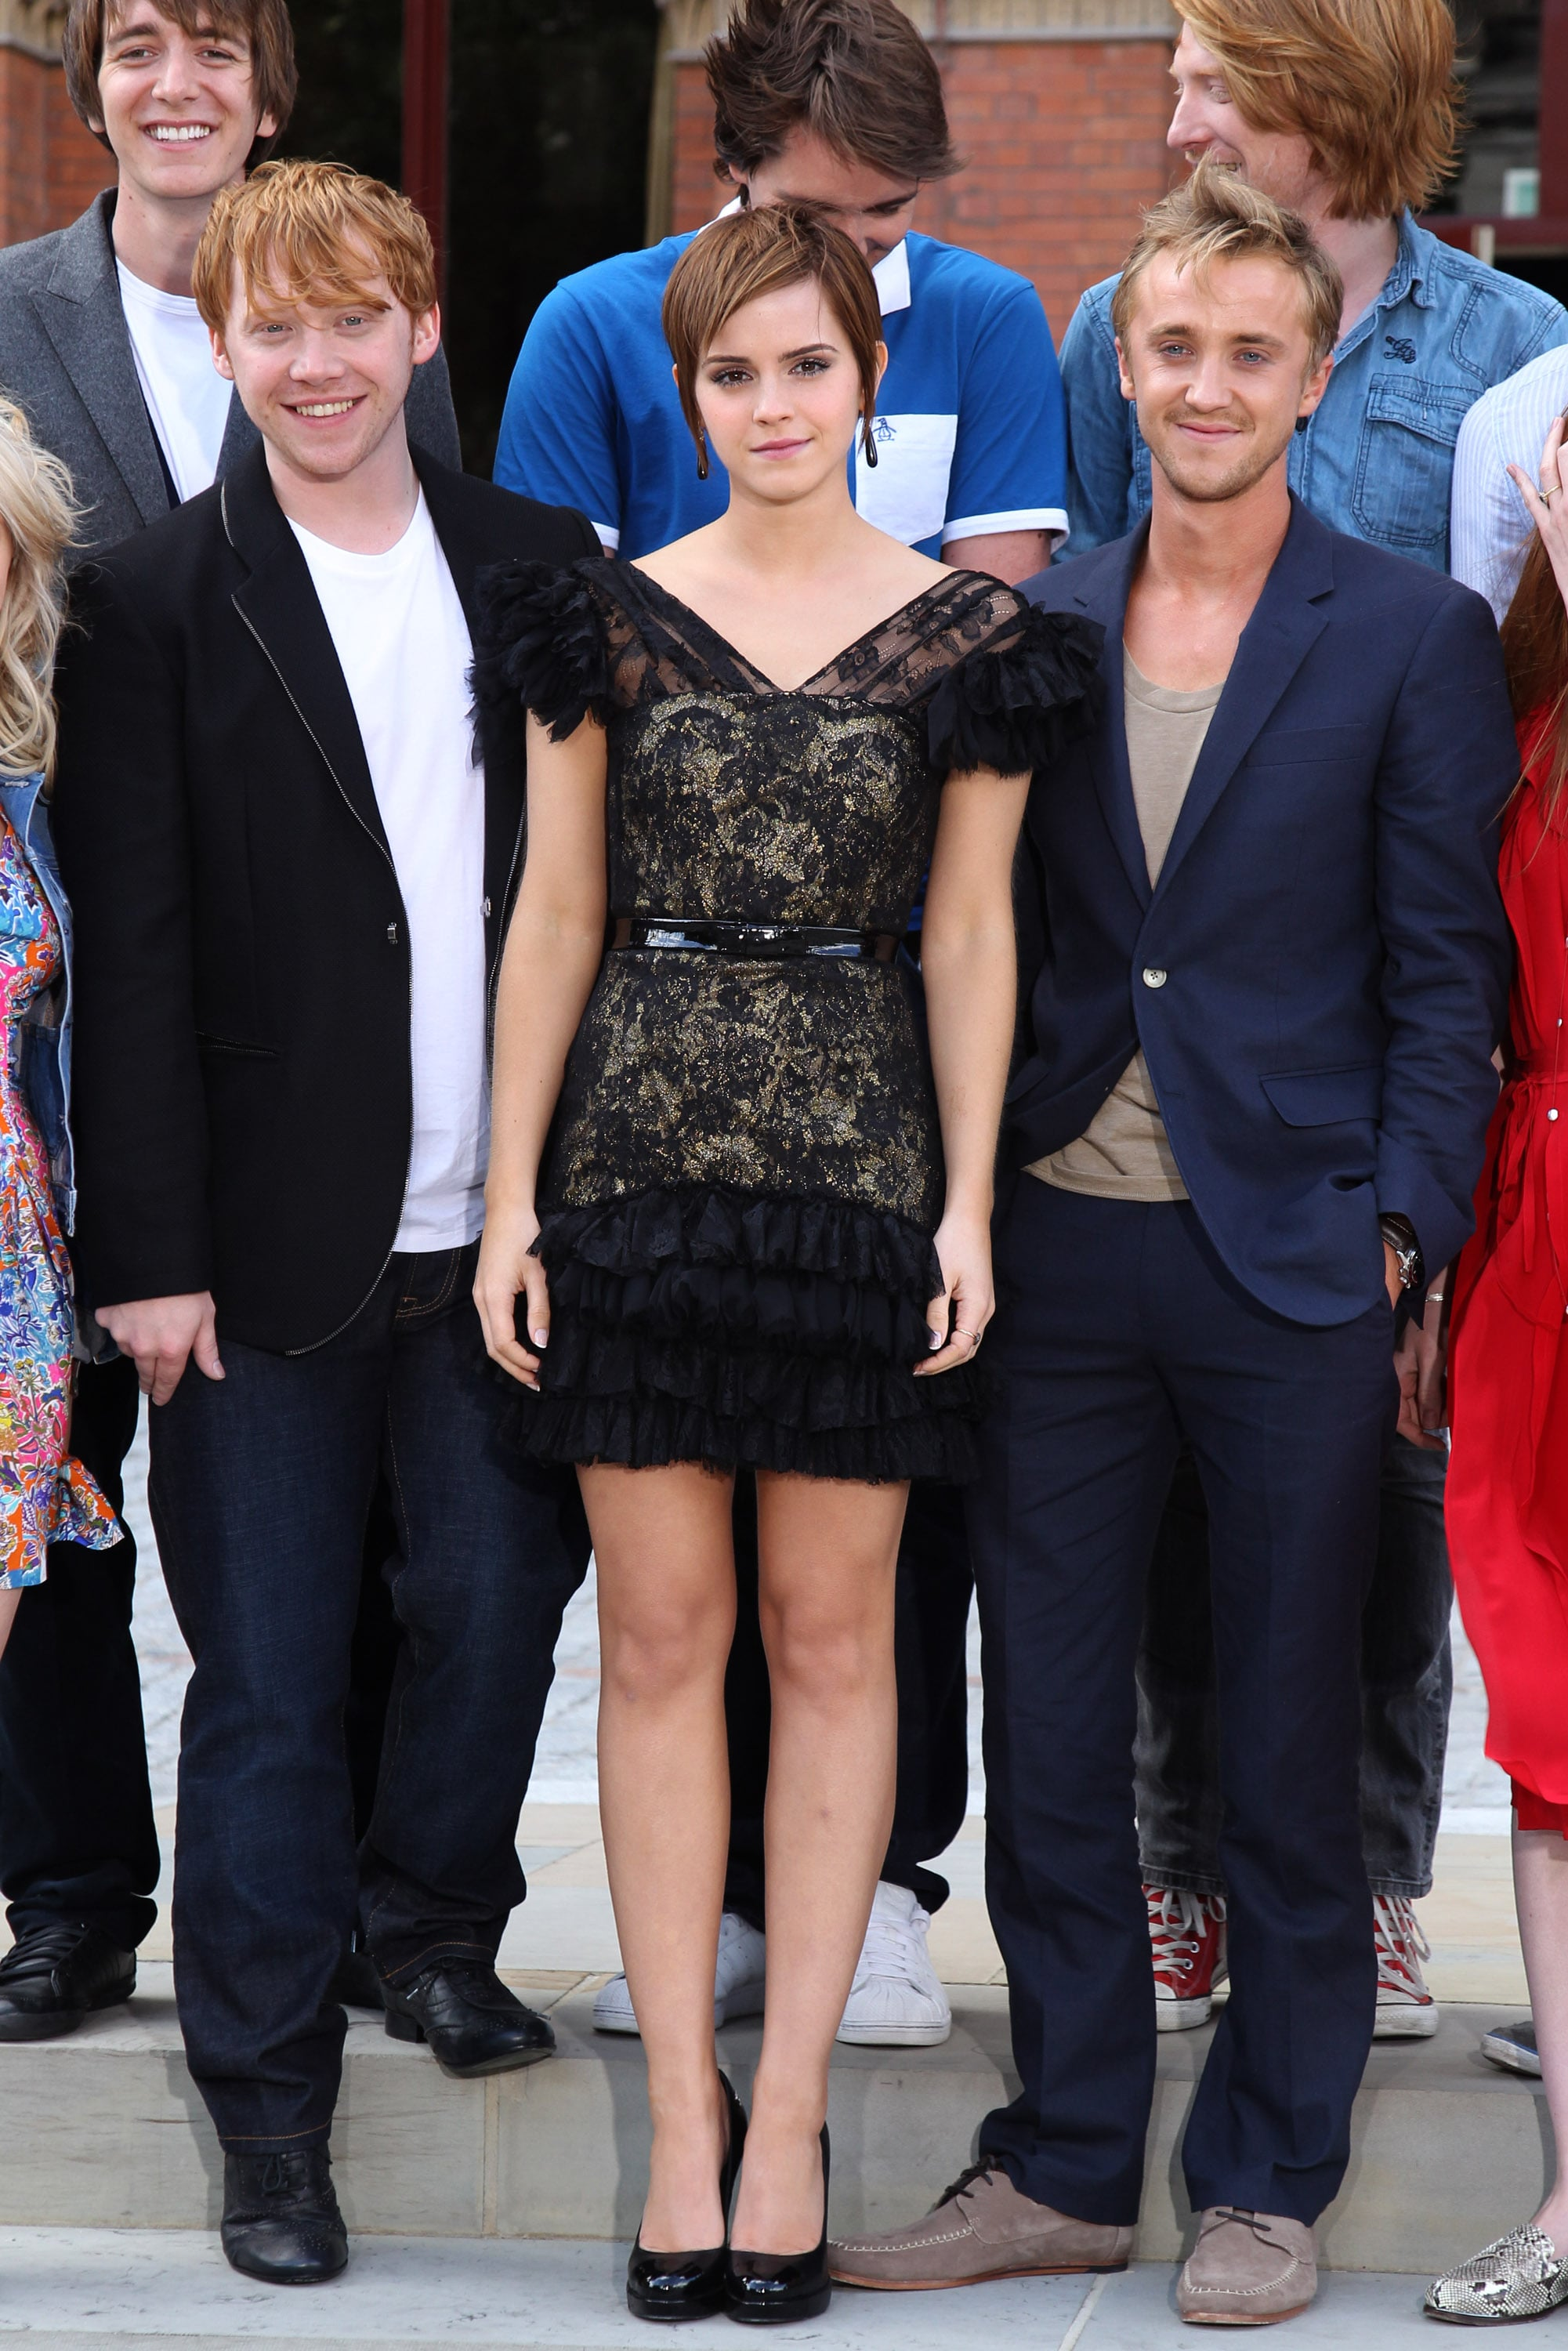 Rupert, Emma, and Tom teamed up for one of their final photocalls.